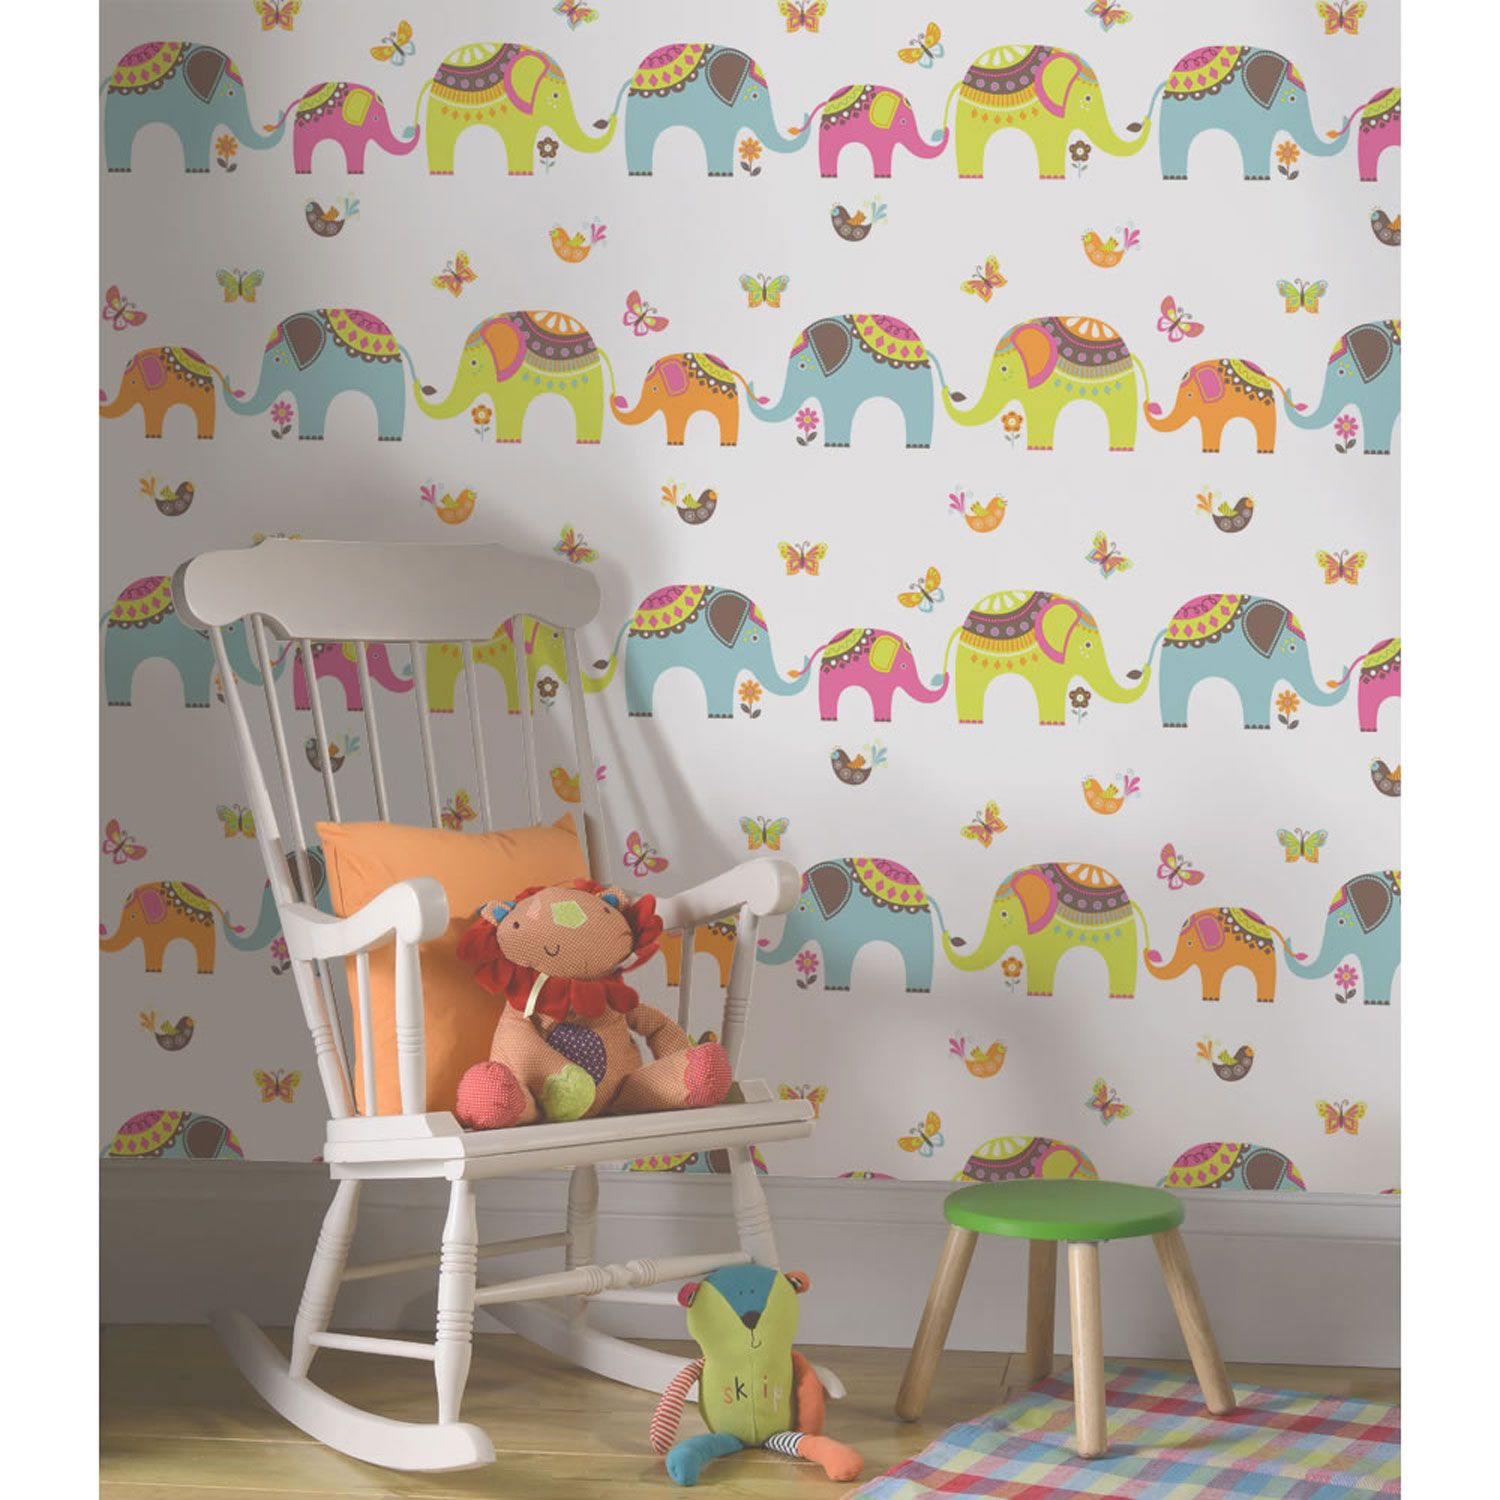 KIDS BEDROOM \/ NURSERY WALLPAPER HOLDEN DECOR PLAYTIME COLLECTION FUN DESIGNS